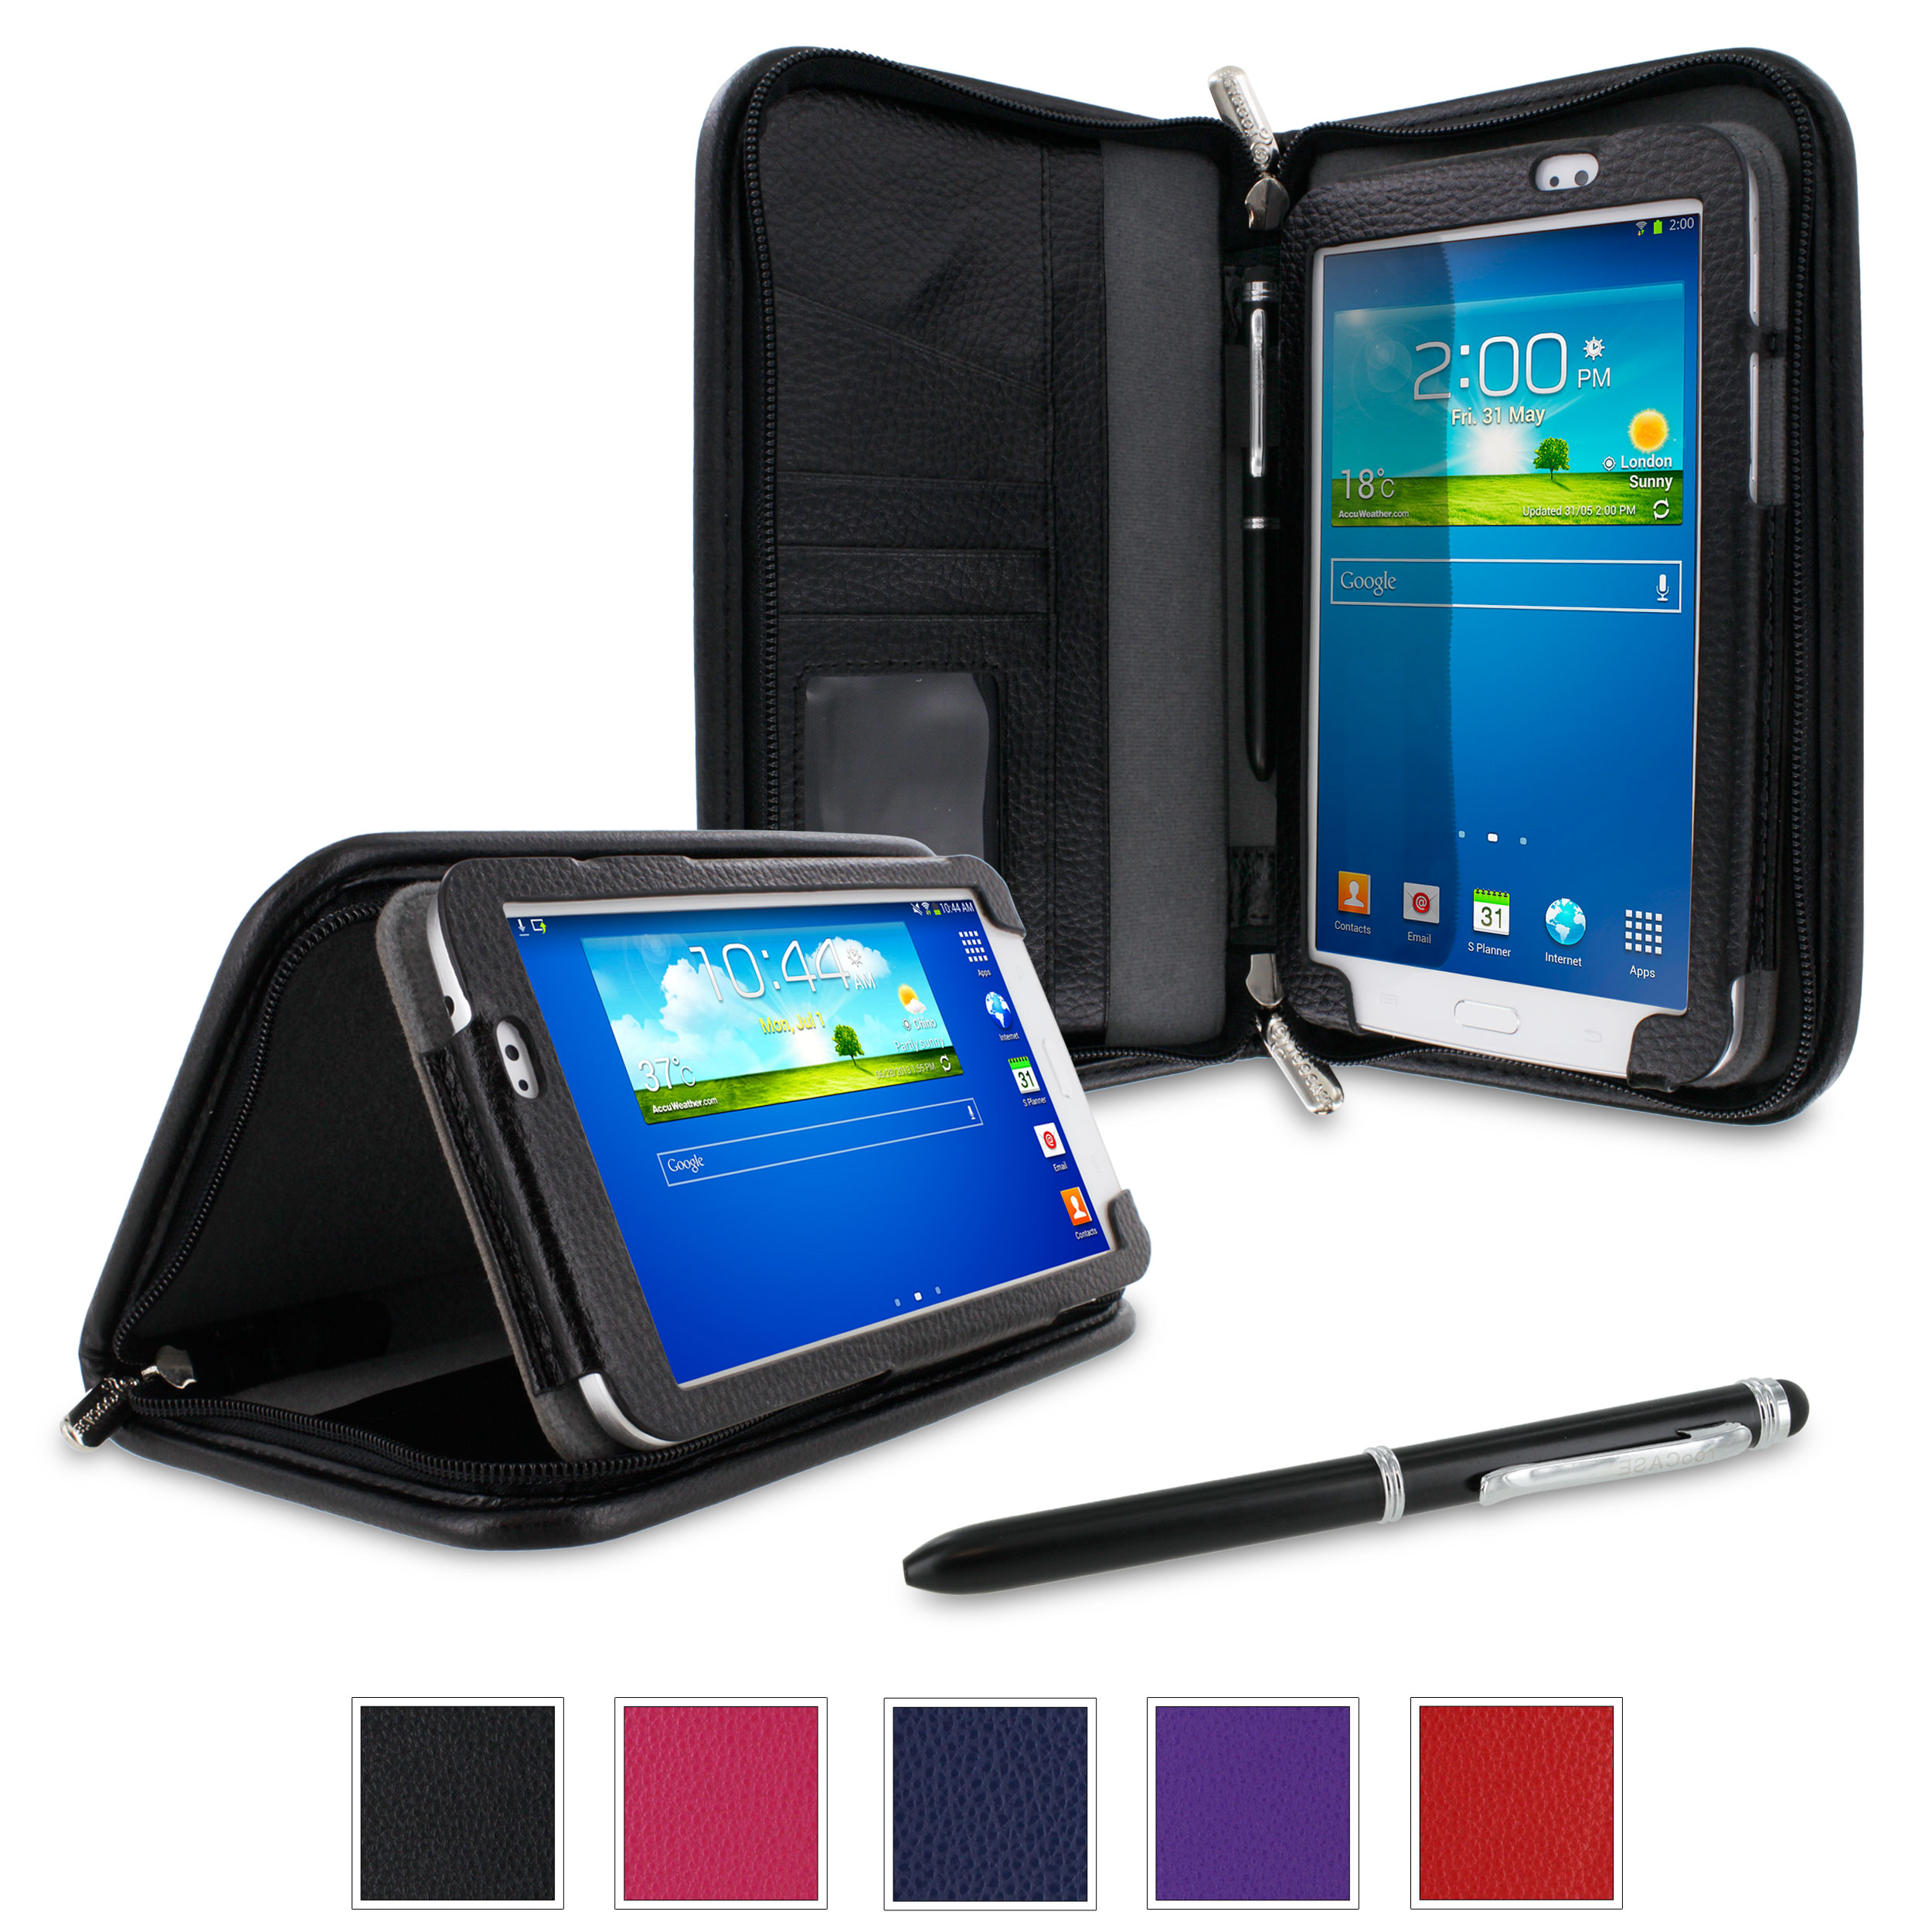 "rooCASE Samsung Galaxy Tab 3 7.0 Case - Executive Portfolio Leather 7-Inch 7"" Cover with Landscape, Portrait, Typing Stand, Hand Strap - BLACK"